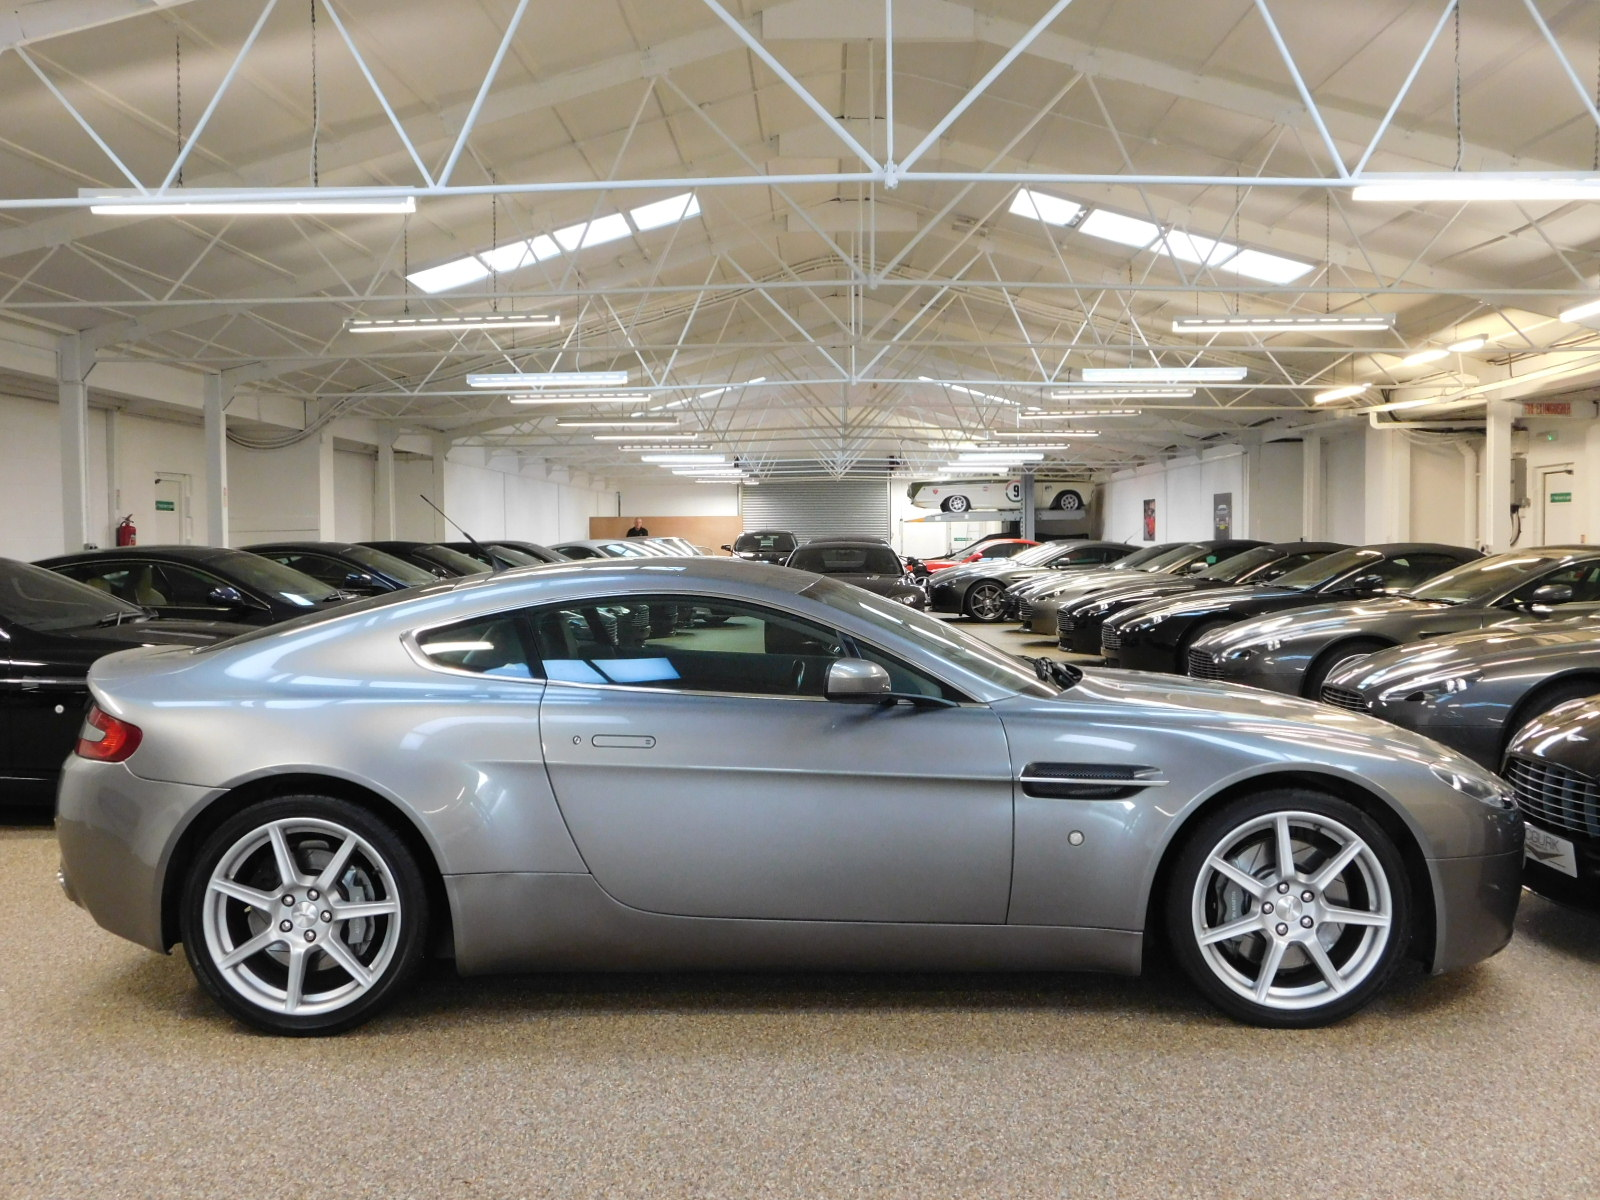 Aston Martin V8 Vantage for sale